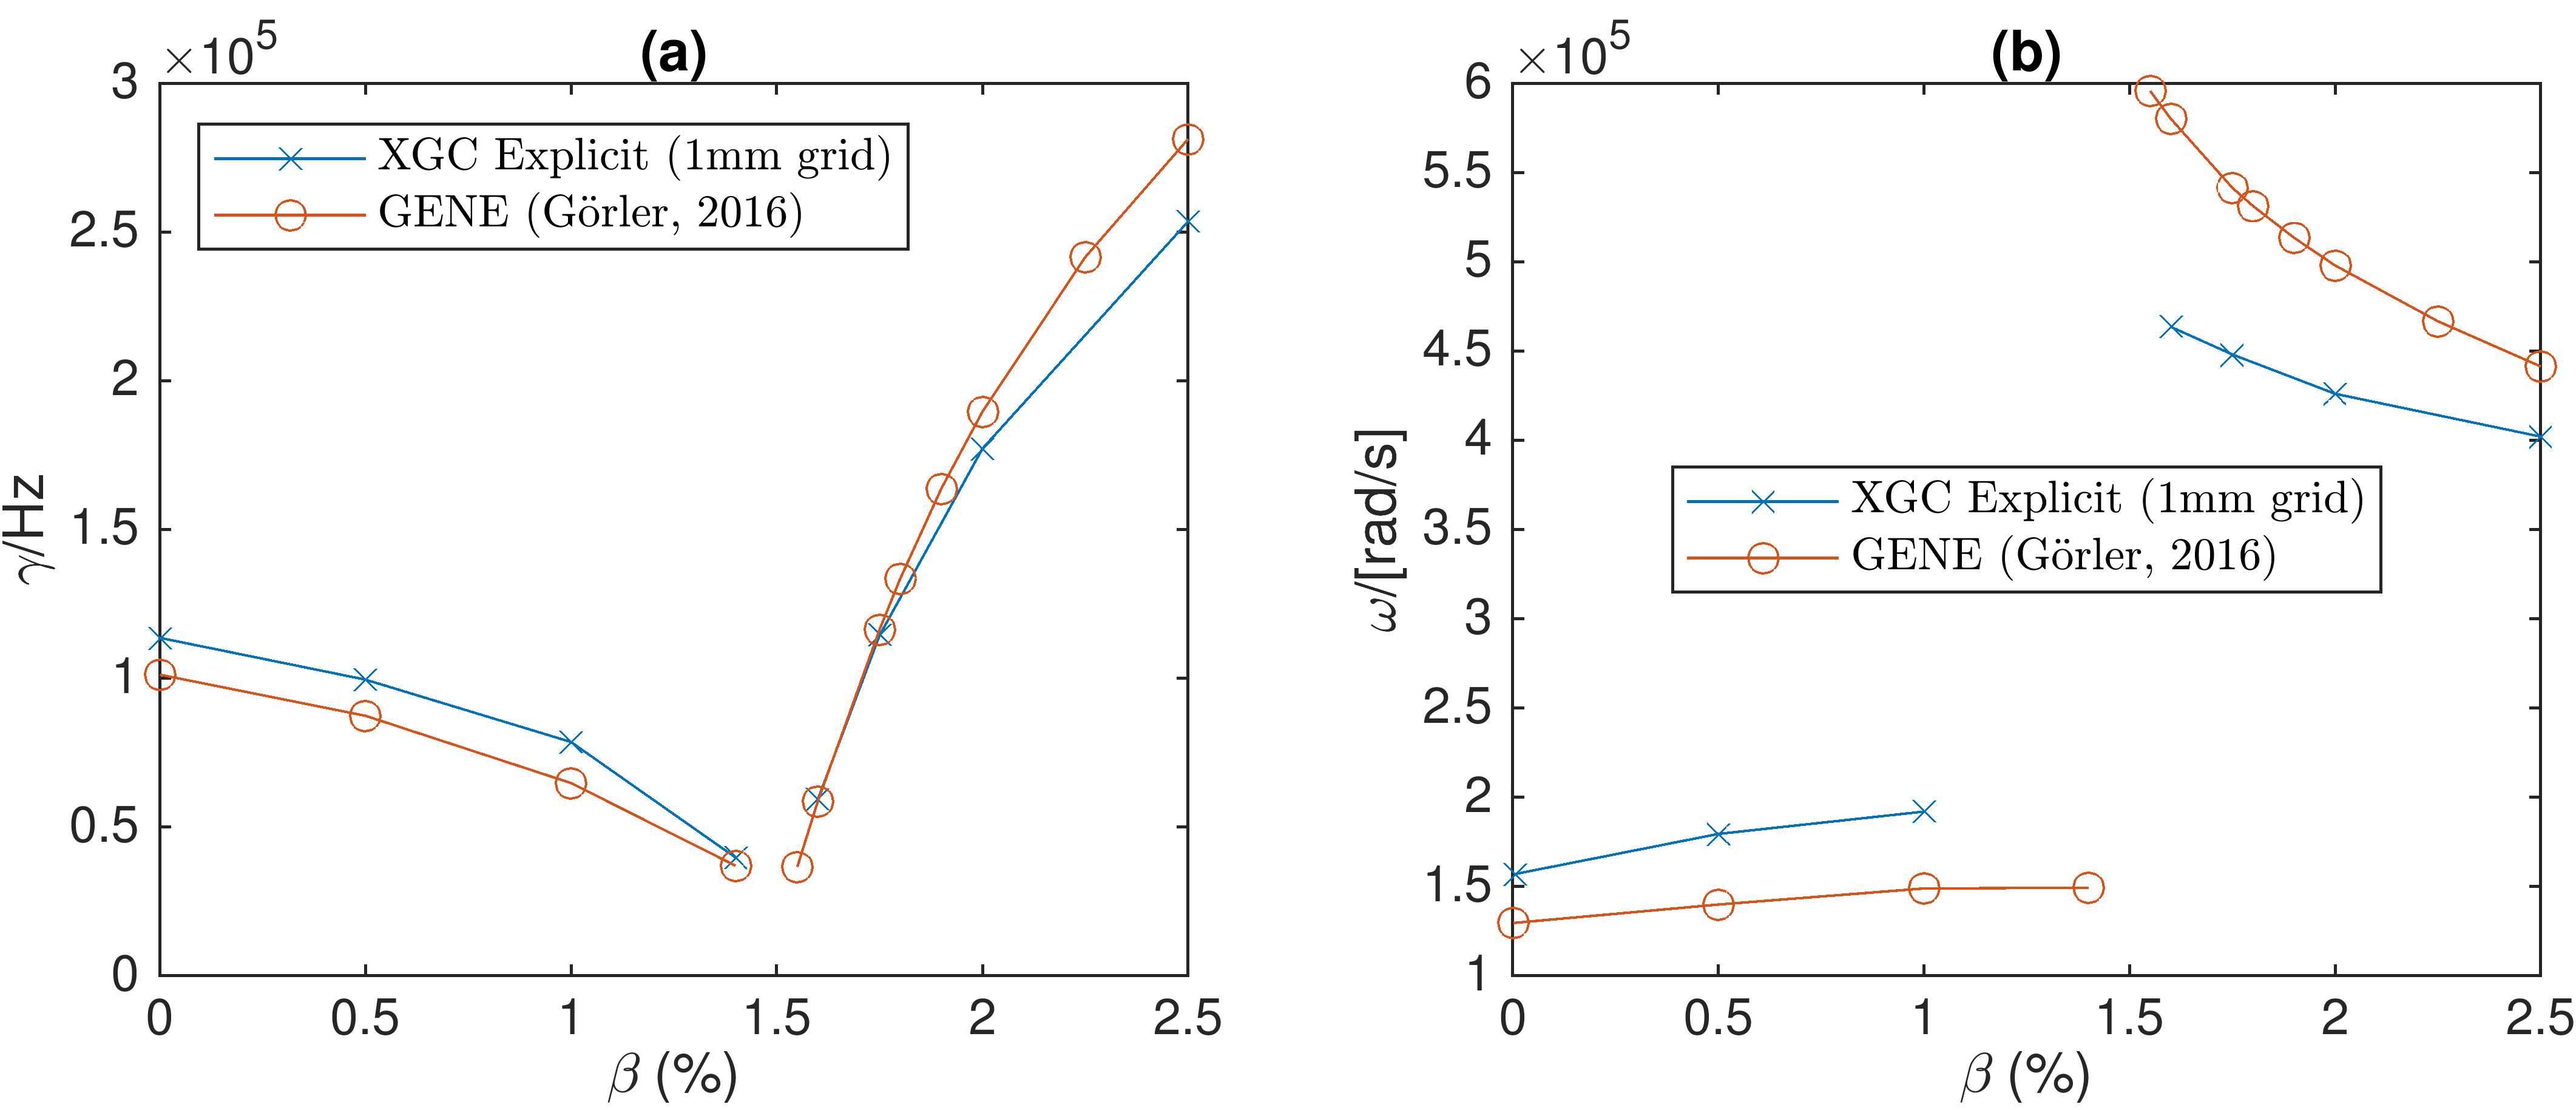 Growth rates (a) and real frequencies (b) as a function of plasma $\beta$ for the explicit version of XGC compared against that for the GENE code (Ref. 6).